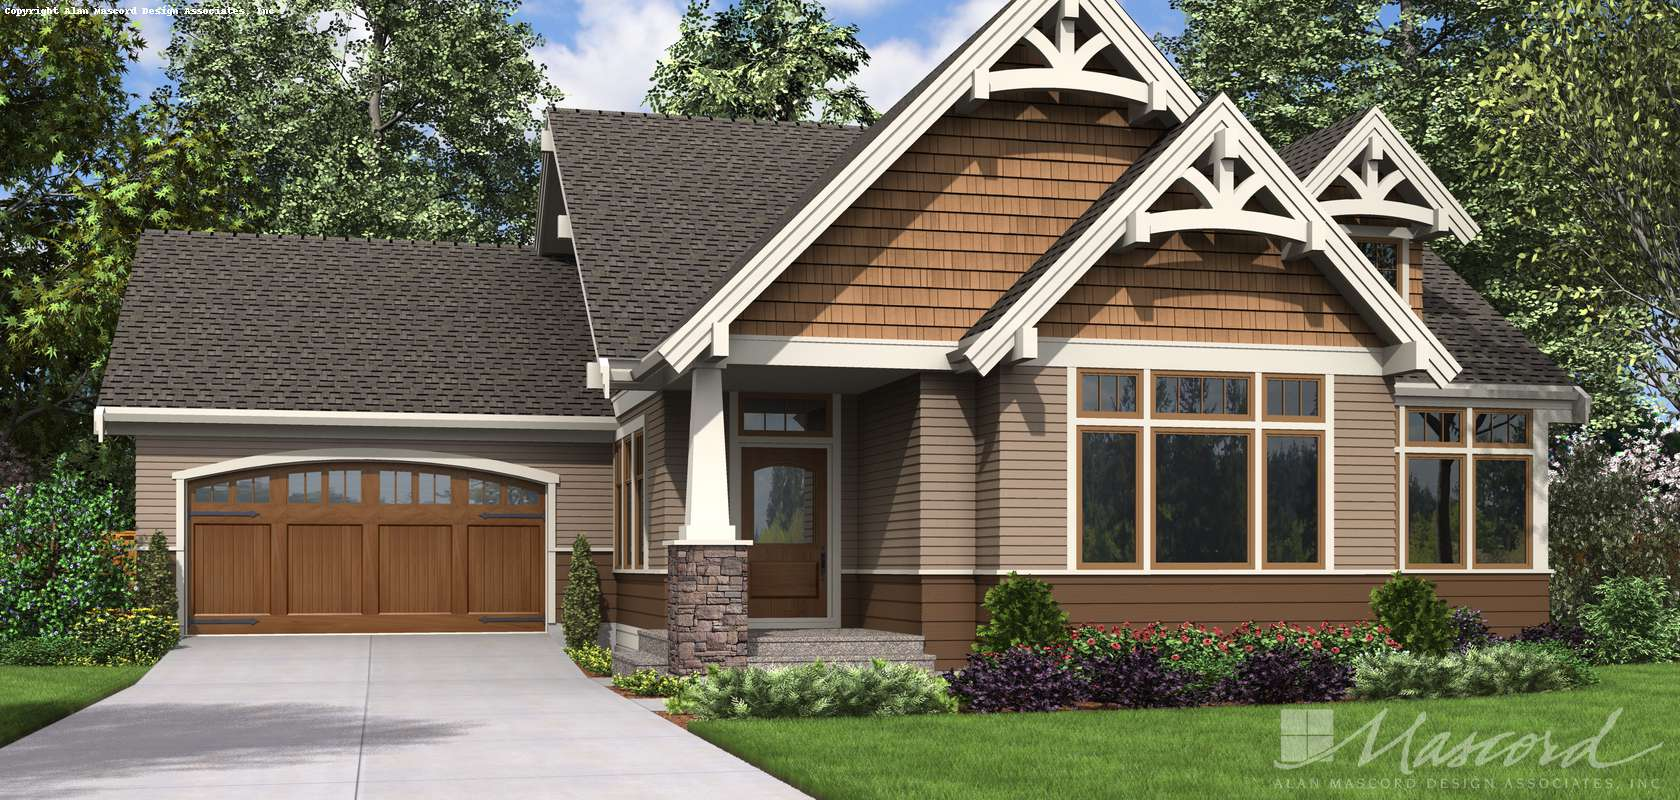 Mascord House Plan 22212: The Selma